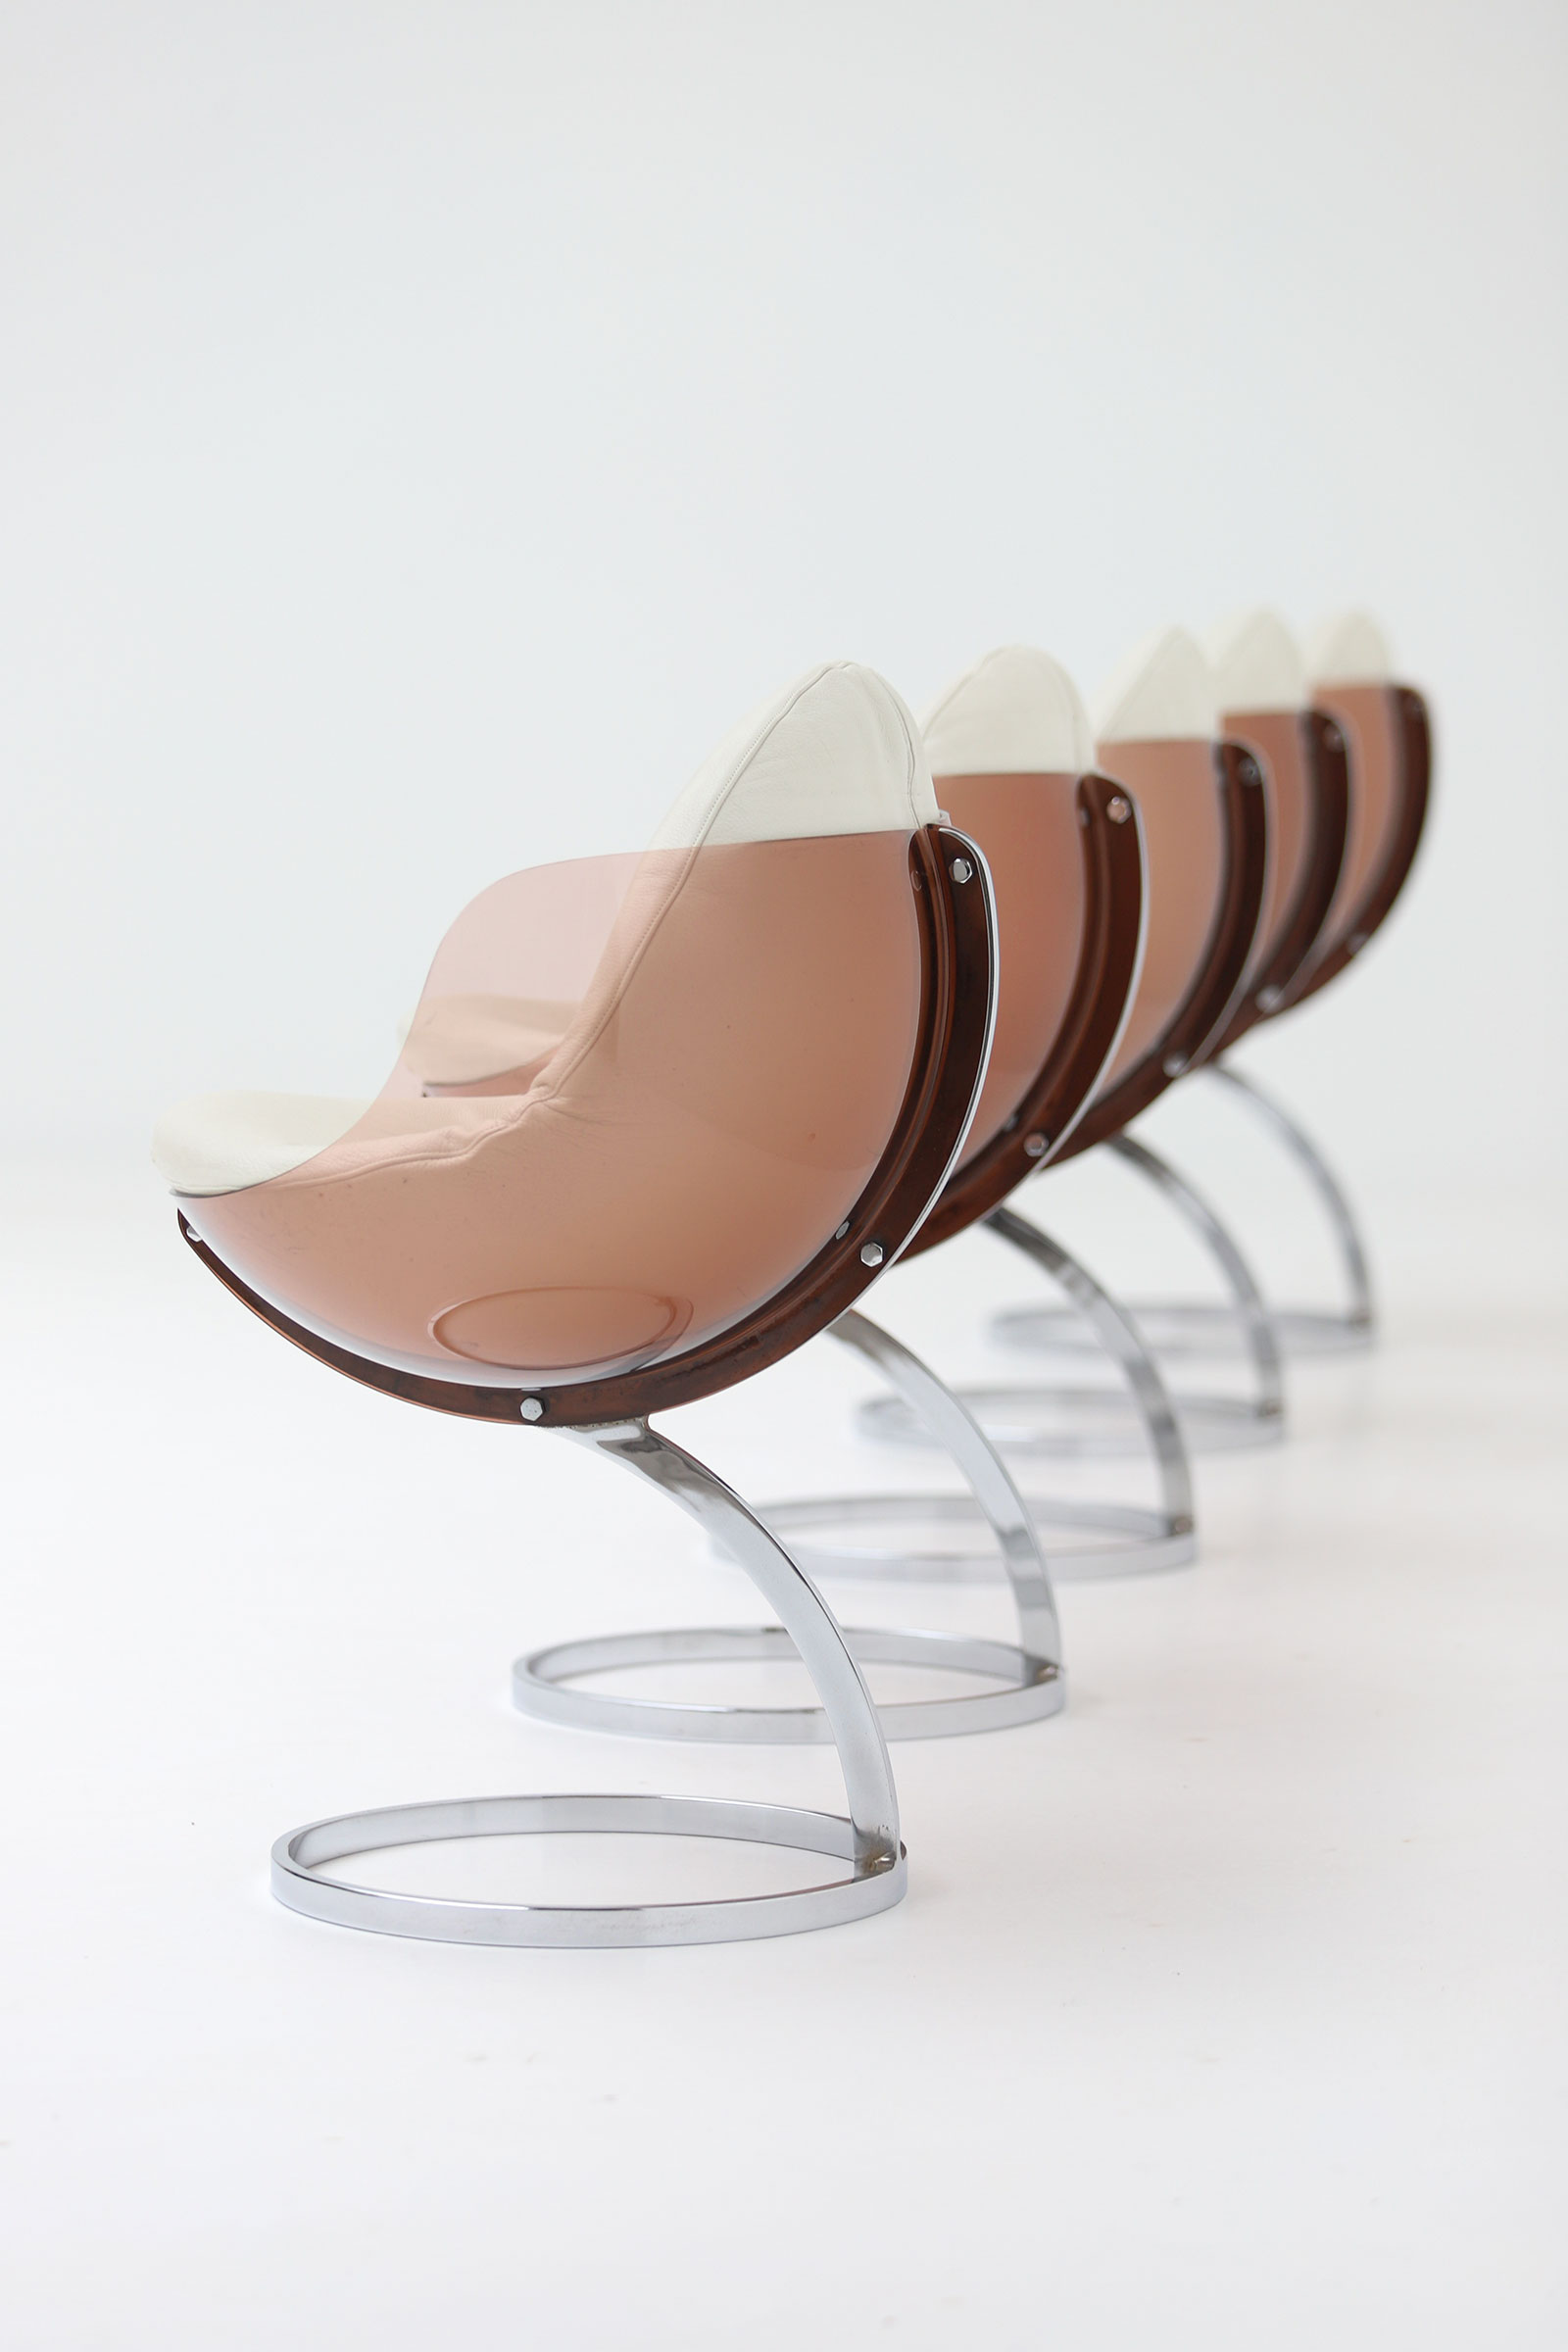 5 Sphere chairs designed by Boris Tabacoff